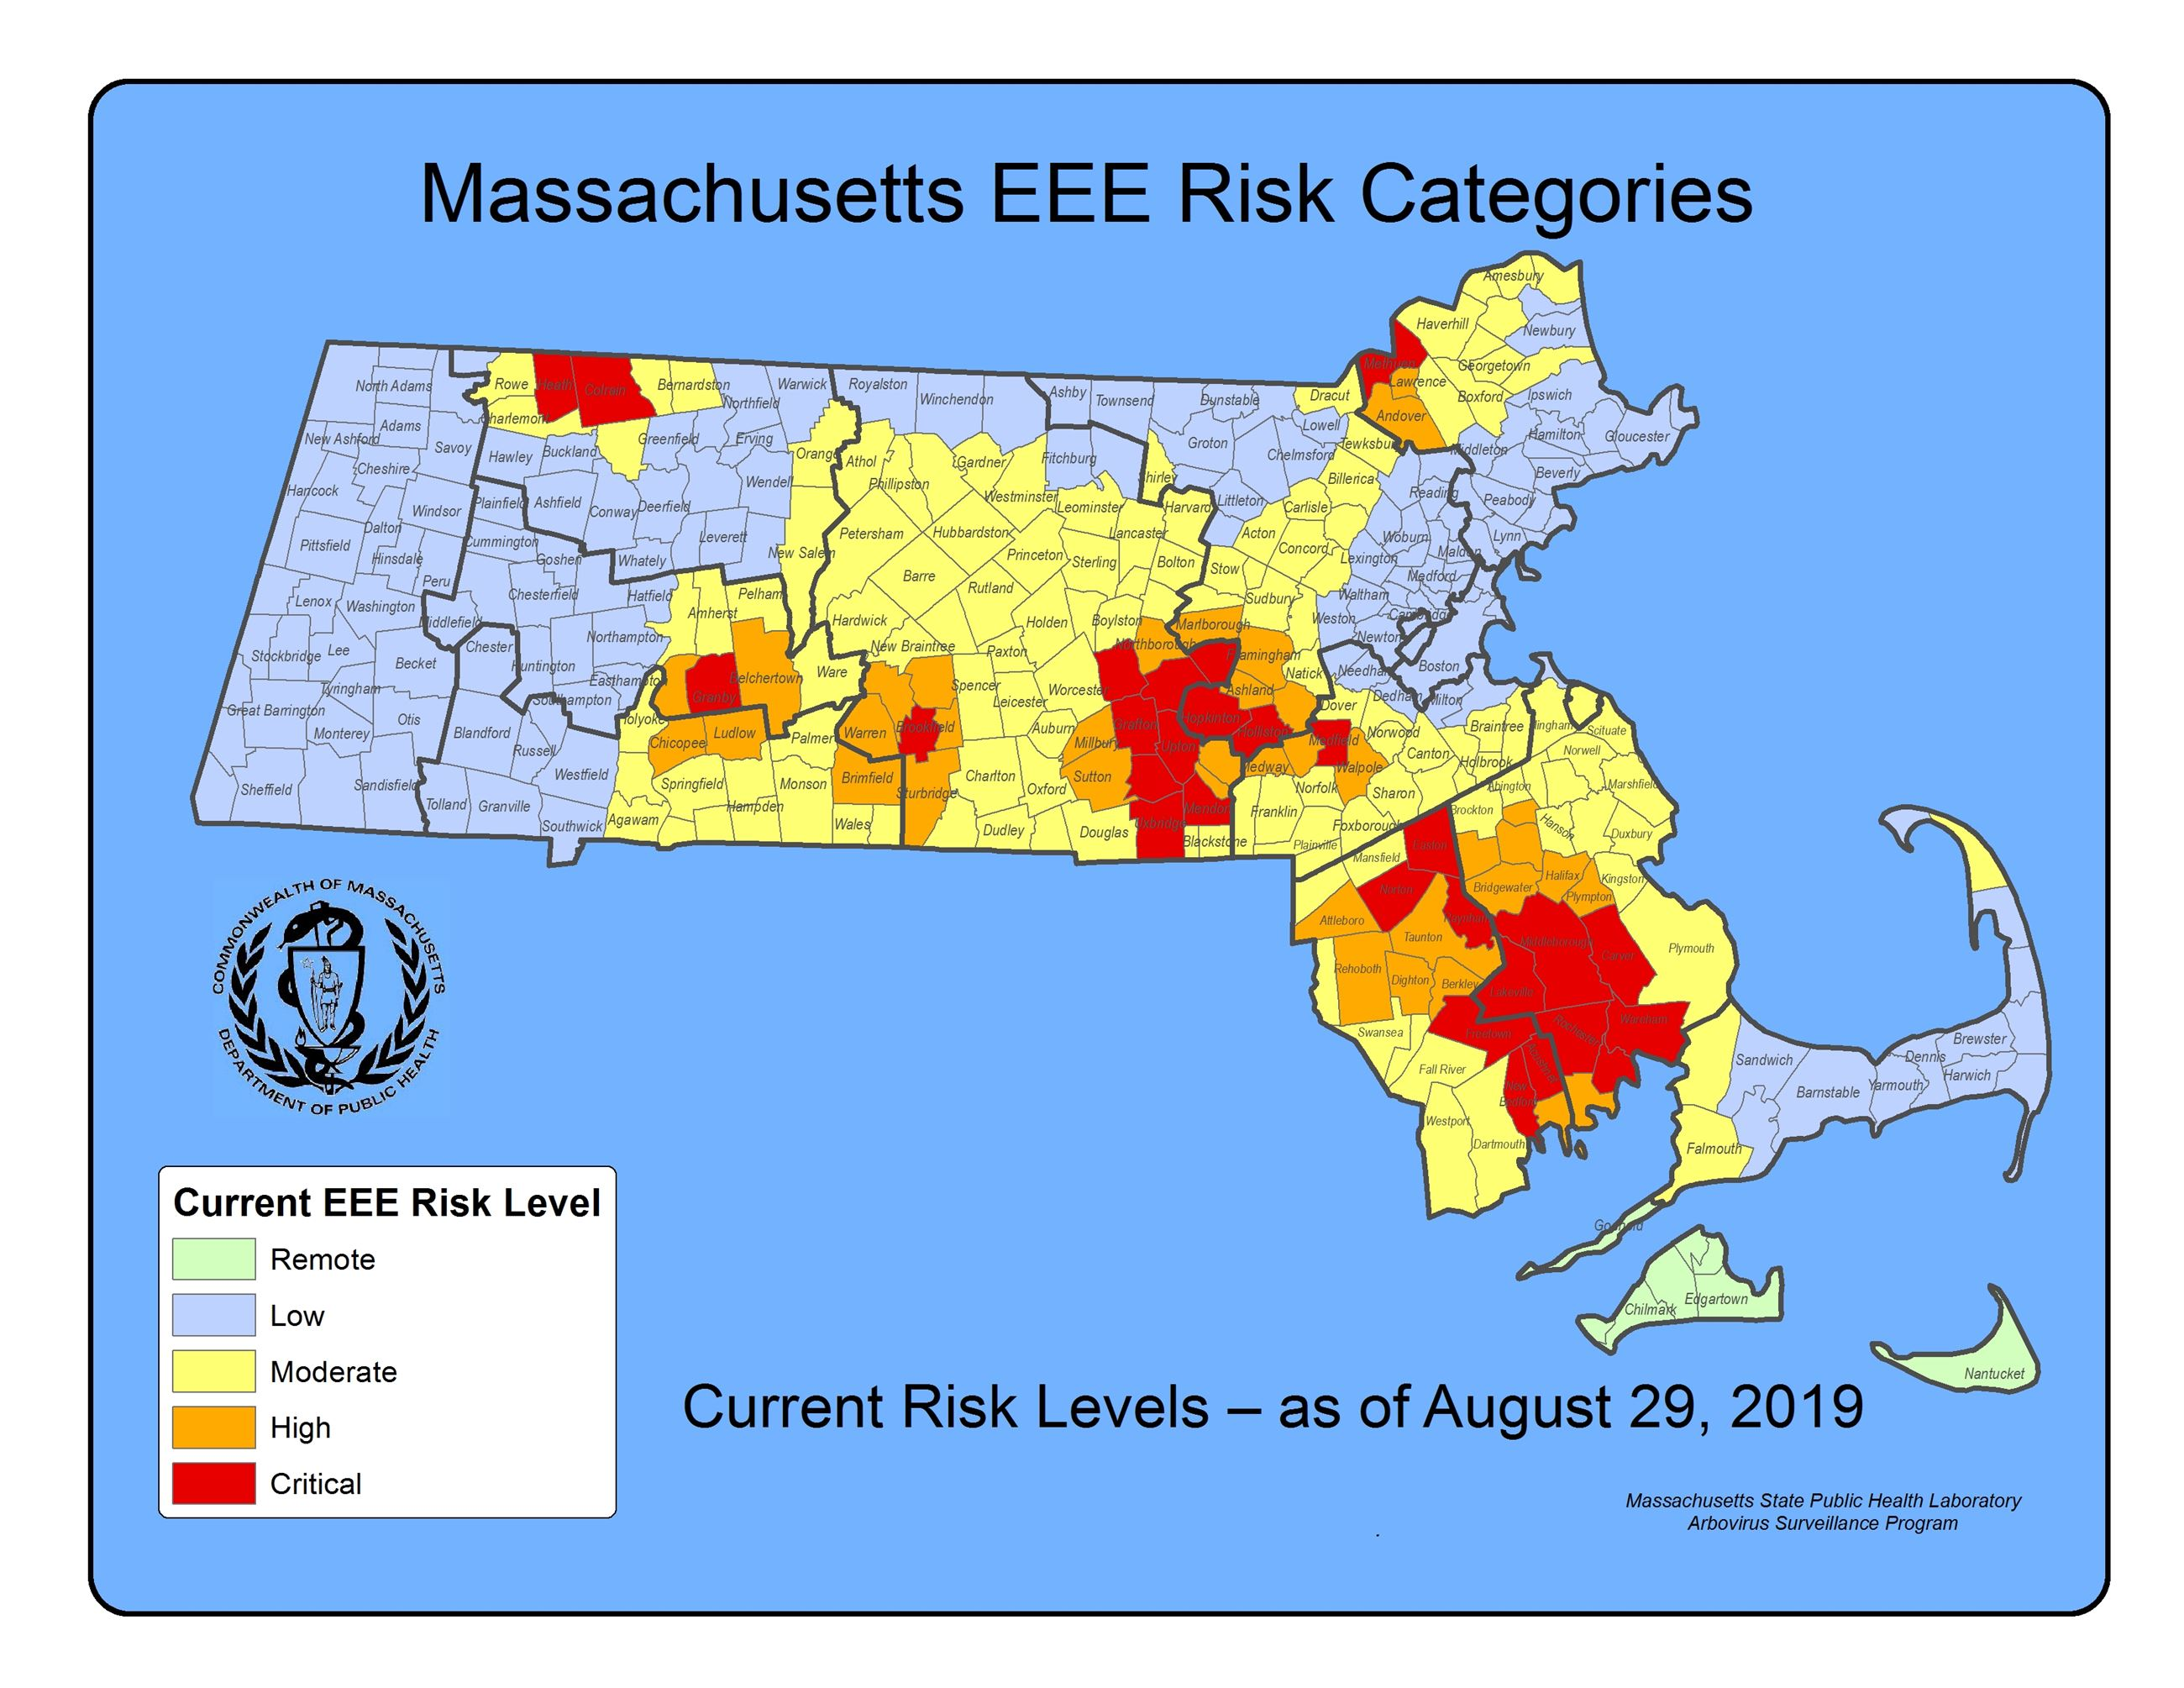 Massachusetts EEE Risk Categories